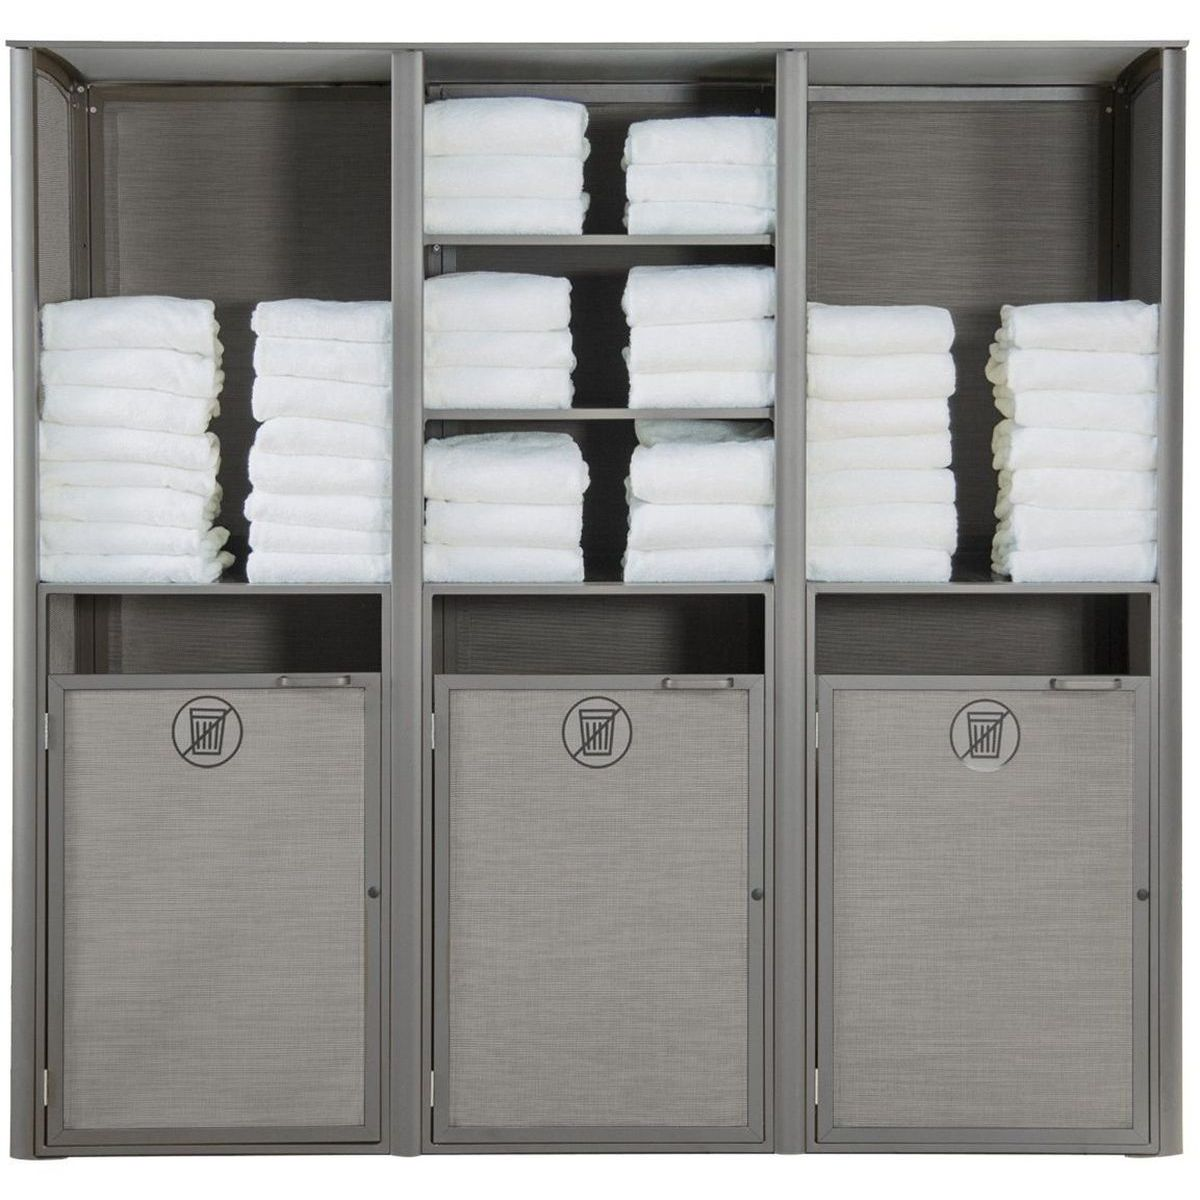 Grosfillex Sunset Towel Valet Triple Unit in Solid Gray/Platinum Gray